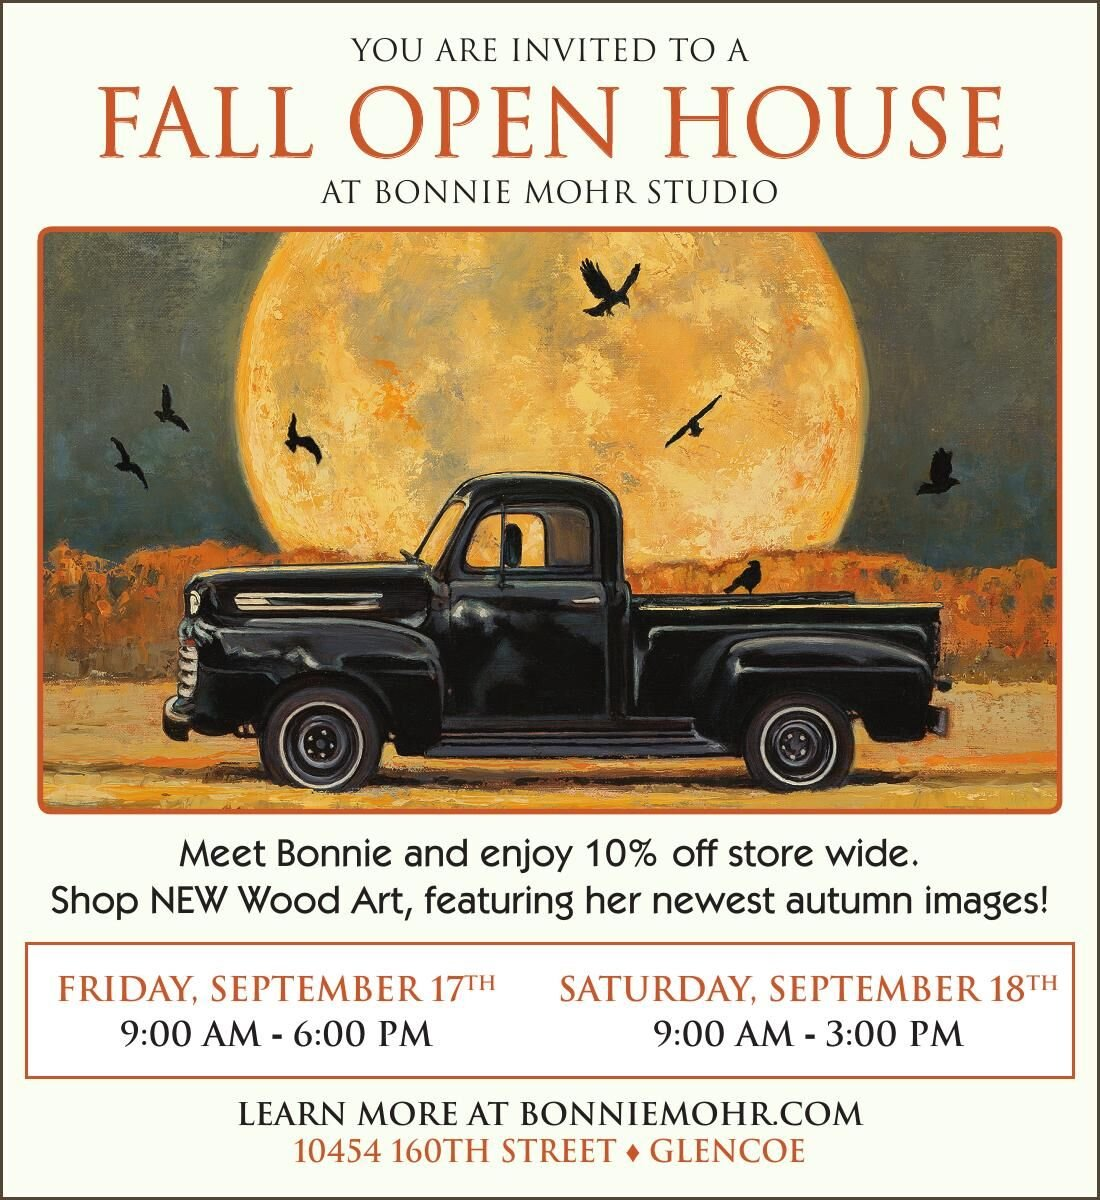 YOU ARE INVITED TO A FAll OpEN HOUSE AT